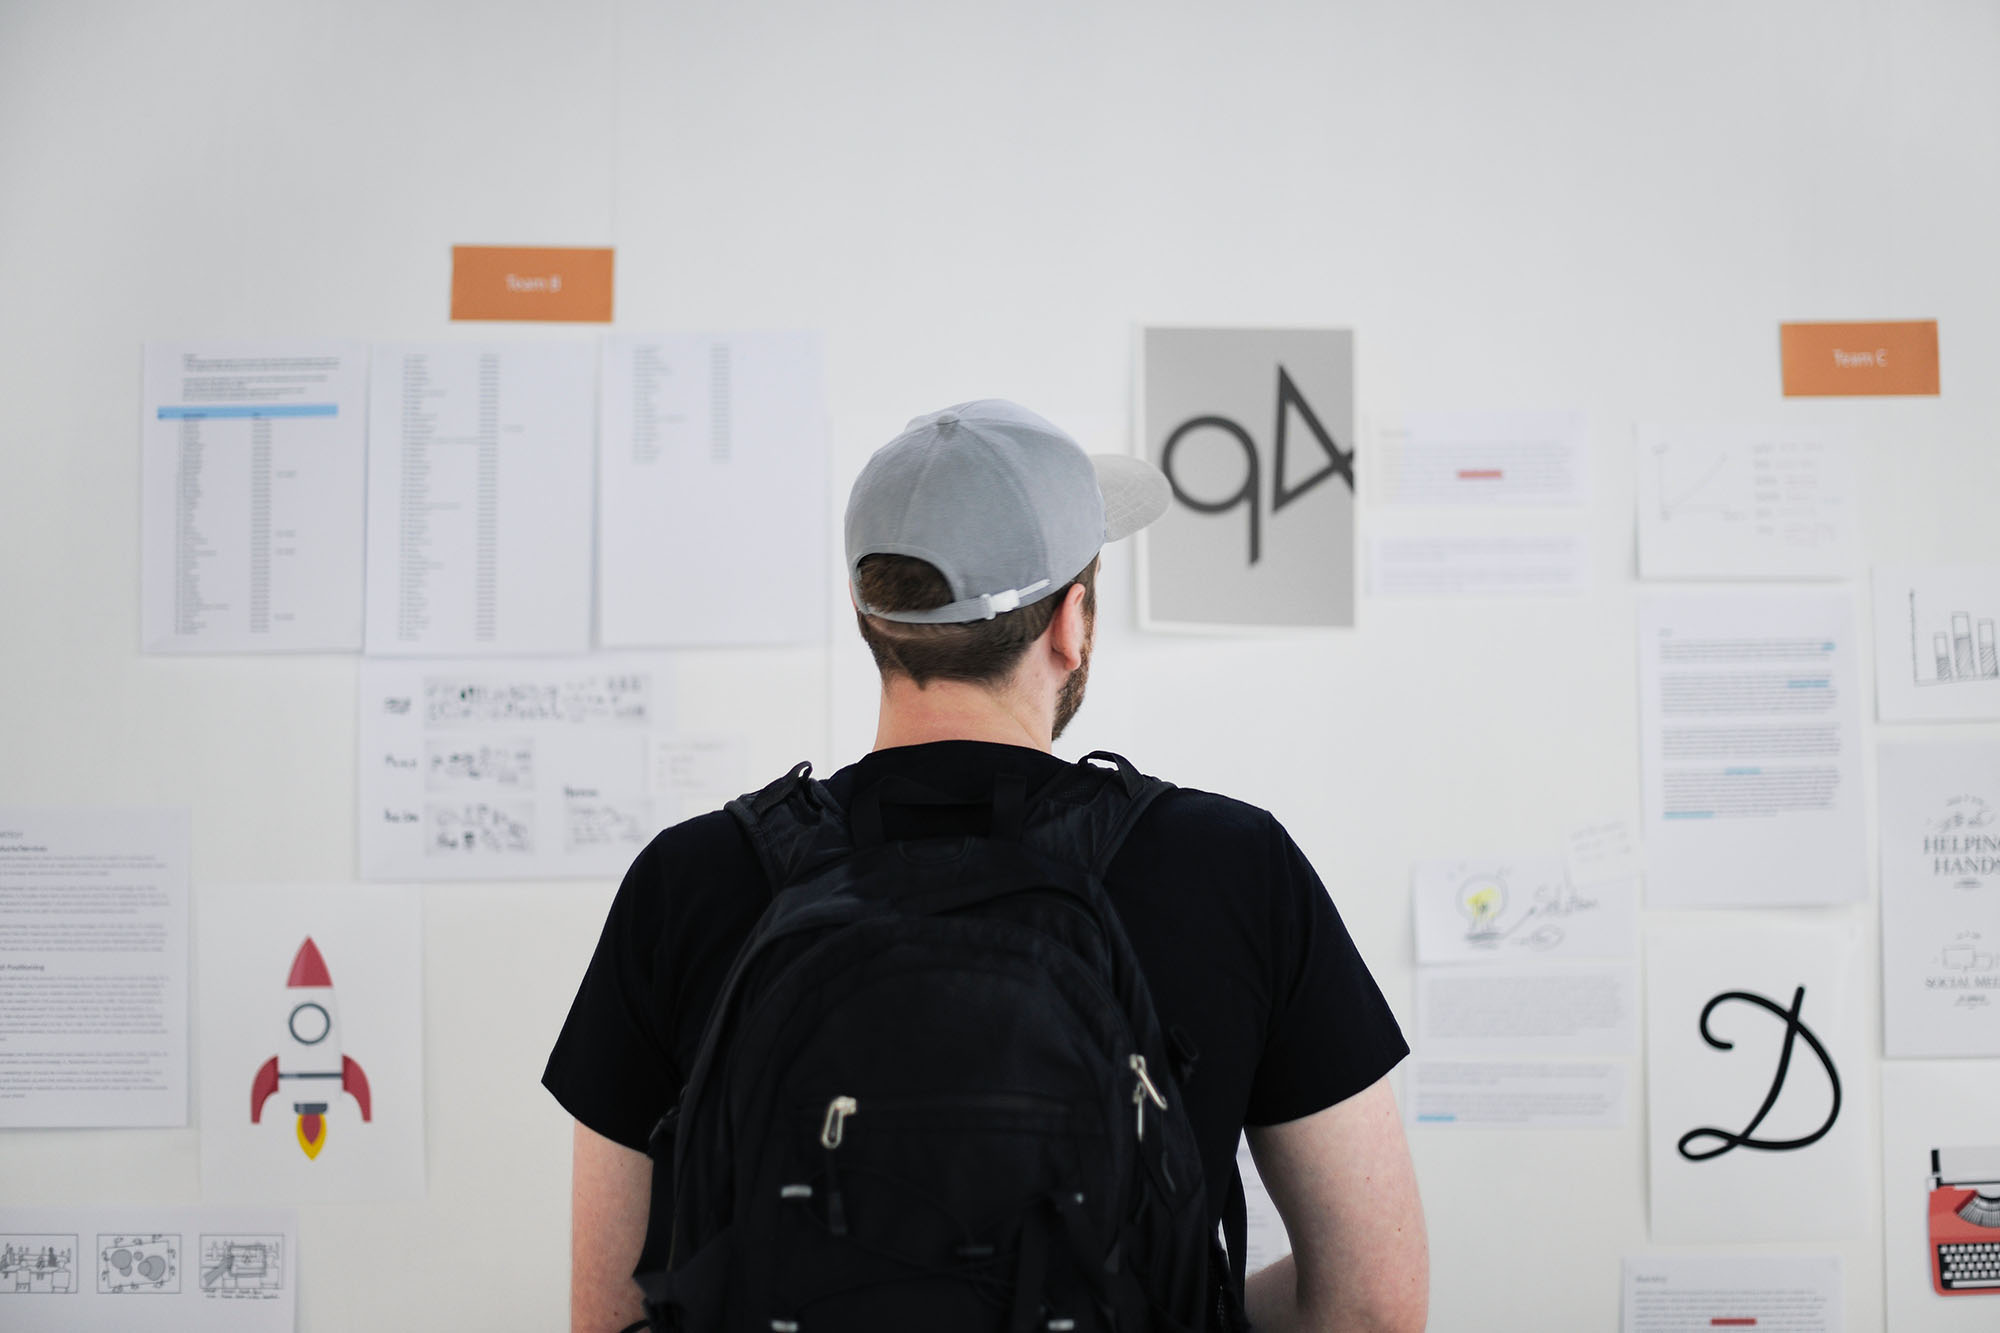 Man staring at whiteboard of logo ideas